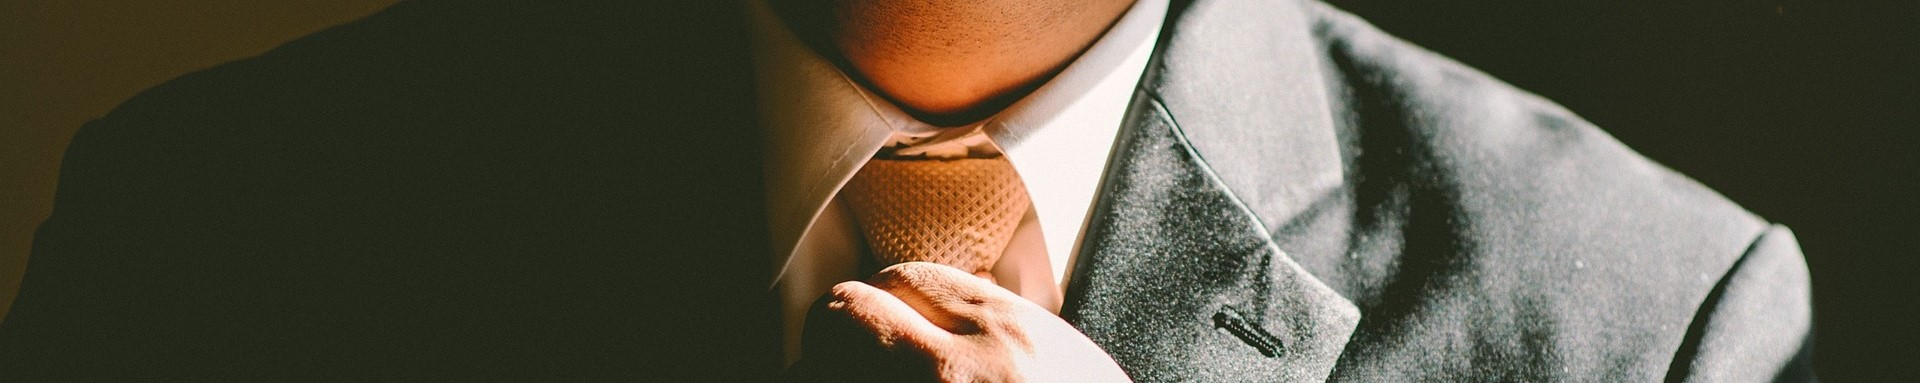 picture of man tightening tie